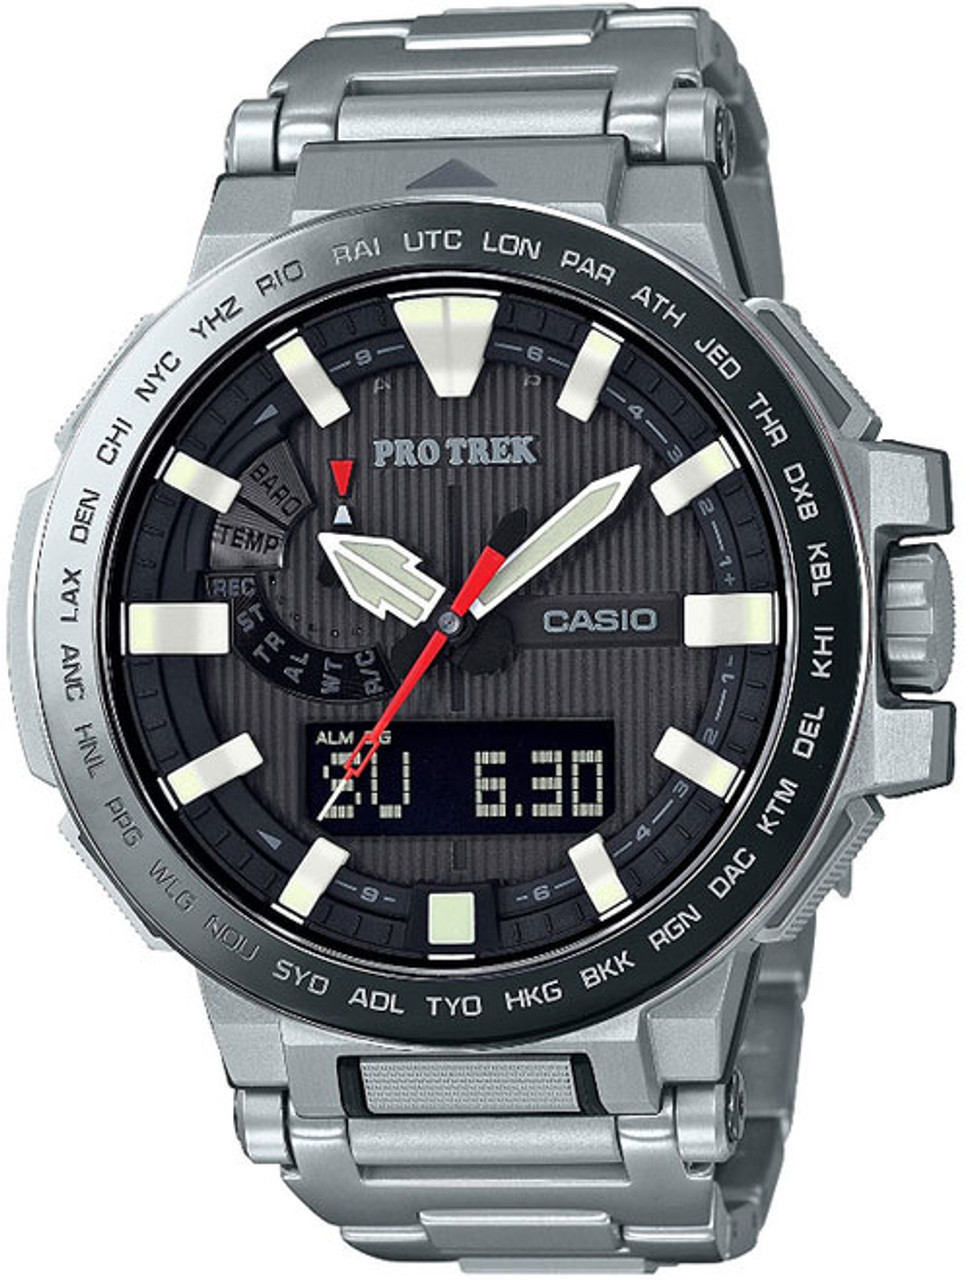 Casio Pro Trek PRX-8000MT-7JR Baselworld 2017 Limited